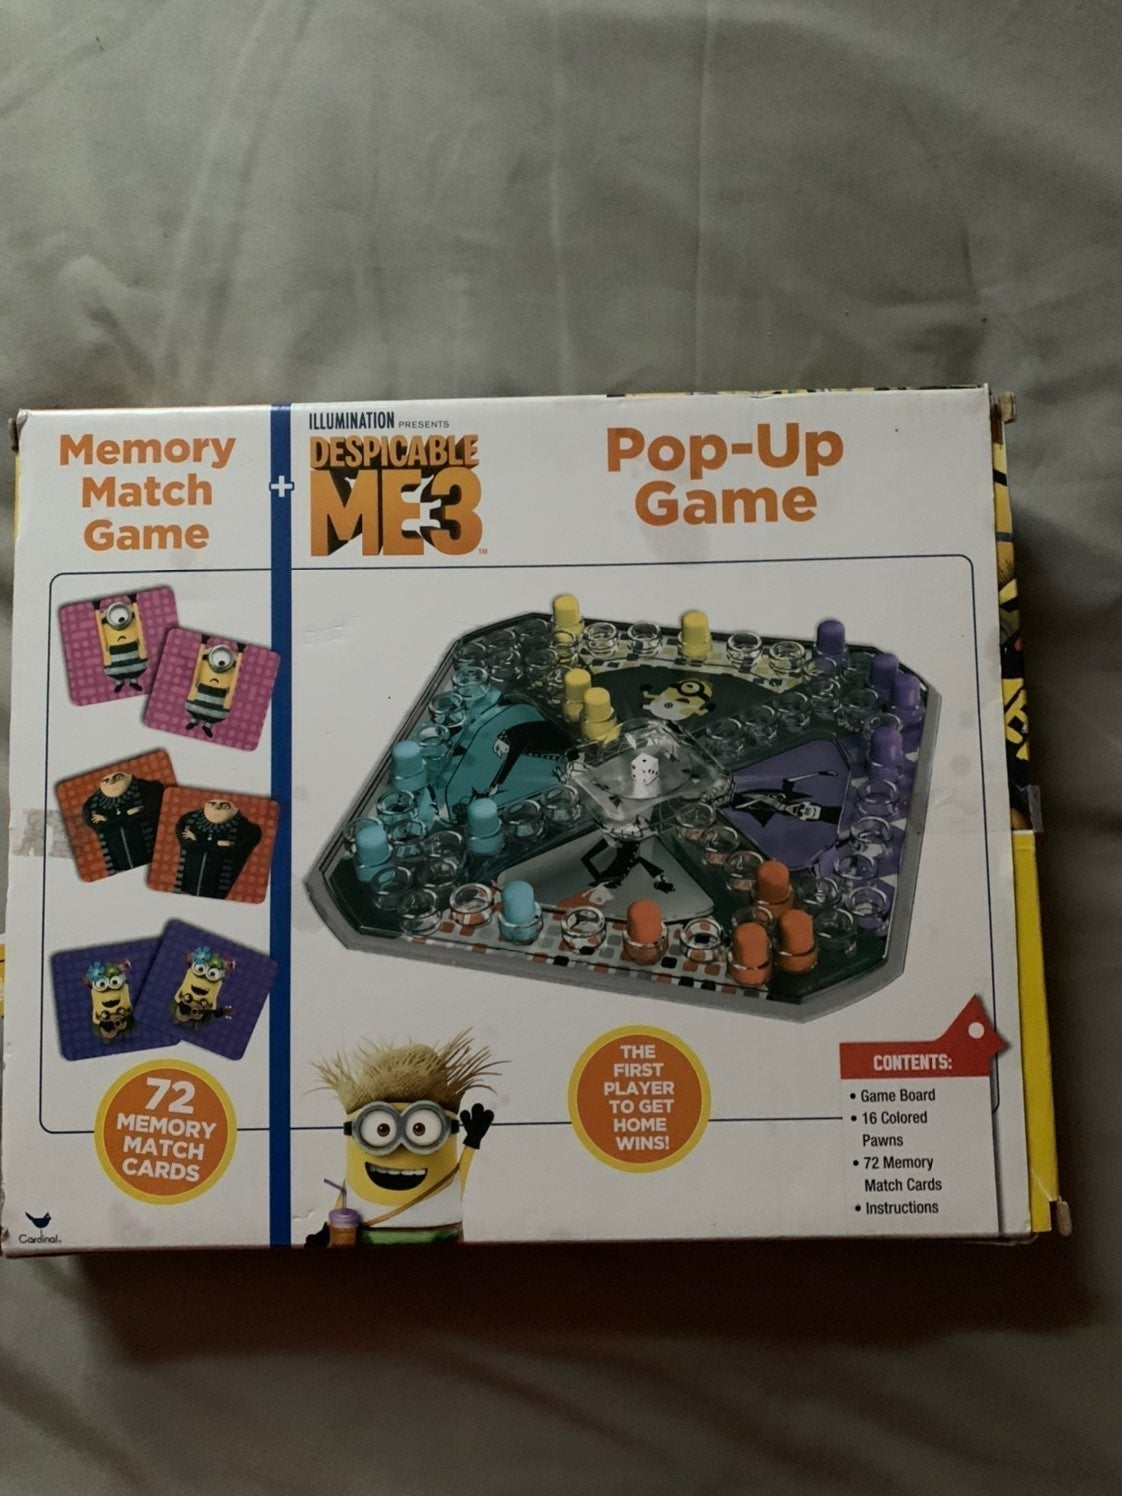 Pop up game Despicable M3 game